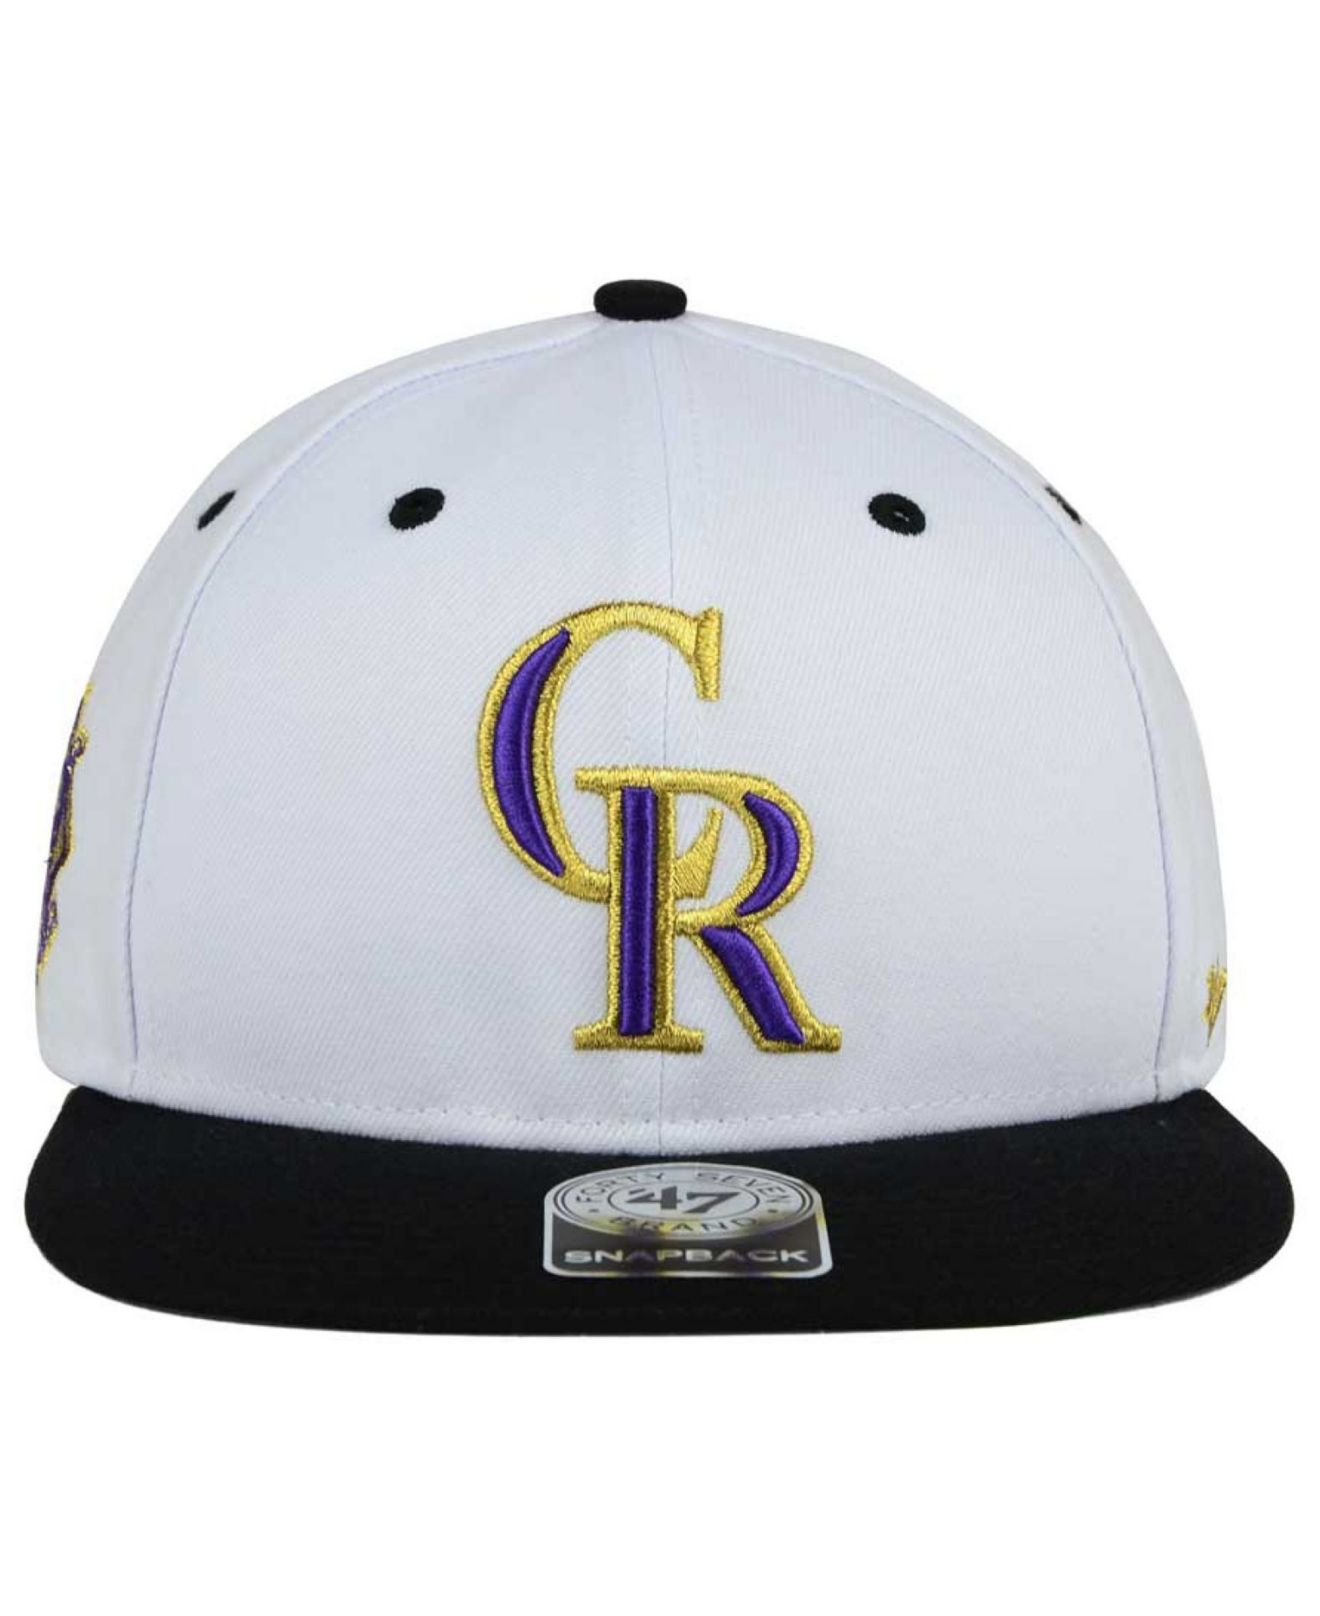 online store 2851a ed993 ... czech lyst 47 brand colorado rockies gold rush snapback cap in black  for men 90967 e3b4c